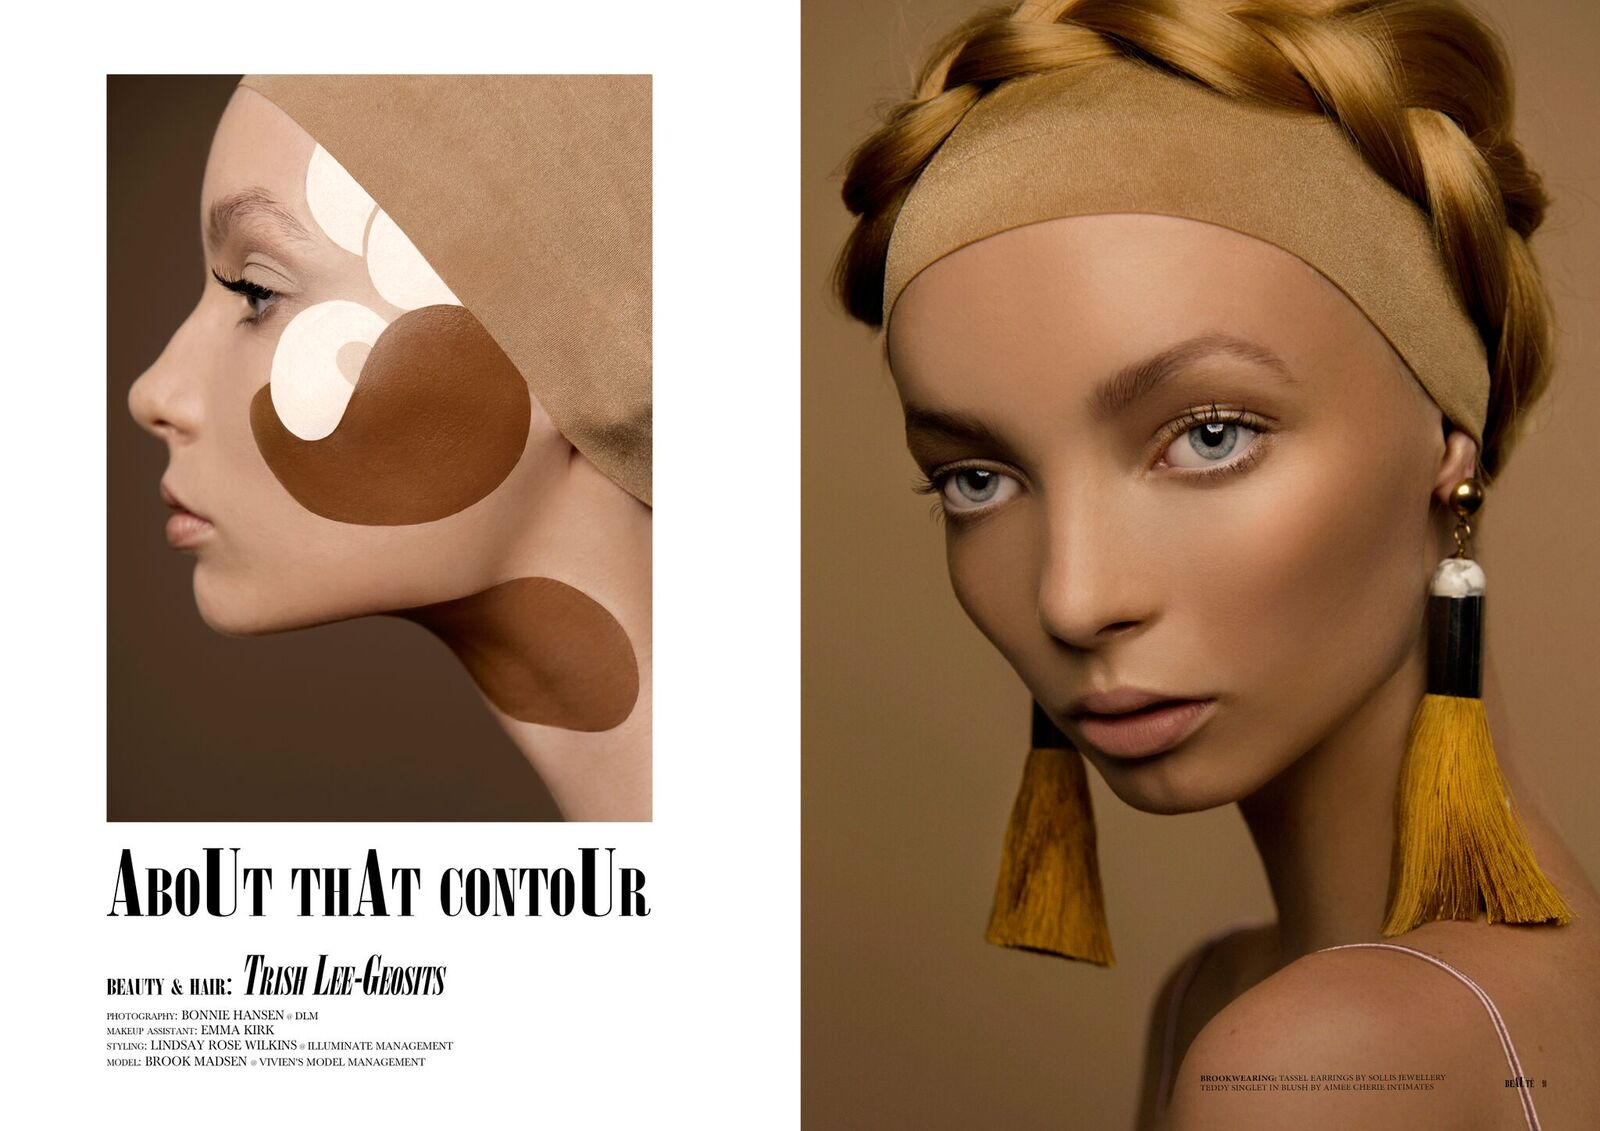 Issue 6 Strong - About That Contour .jpg